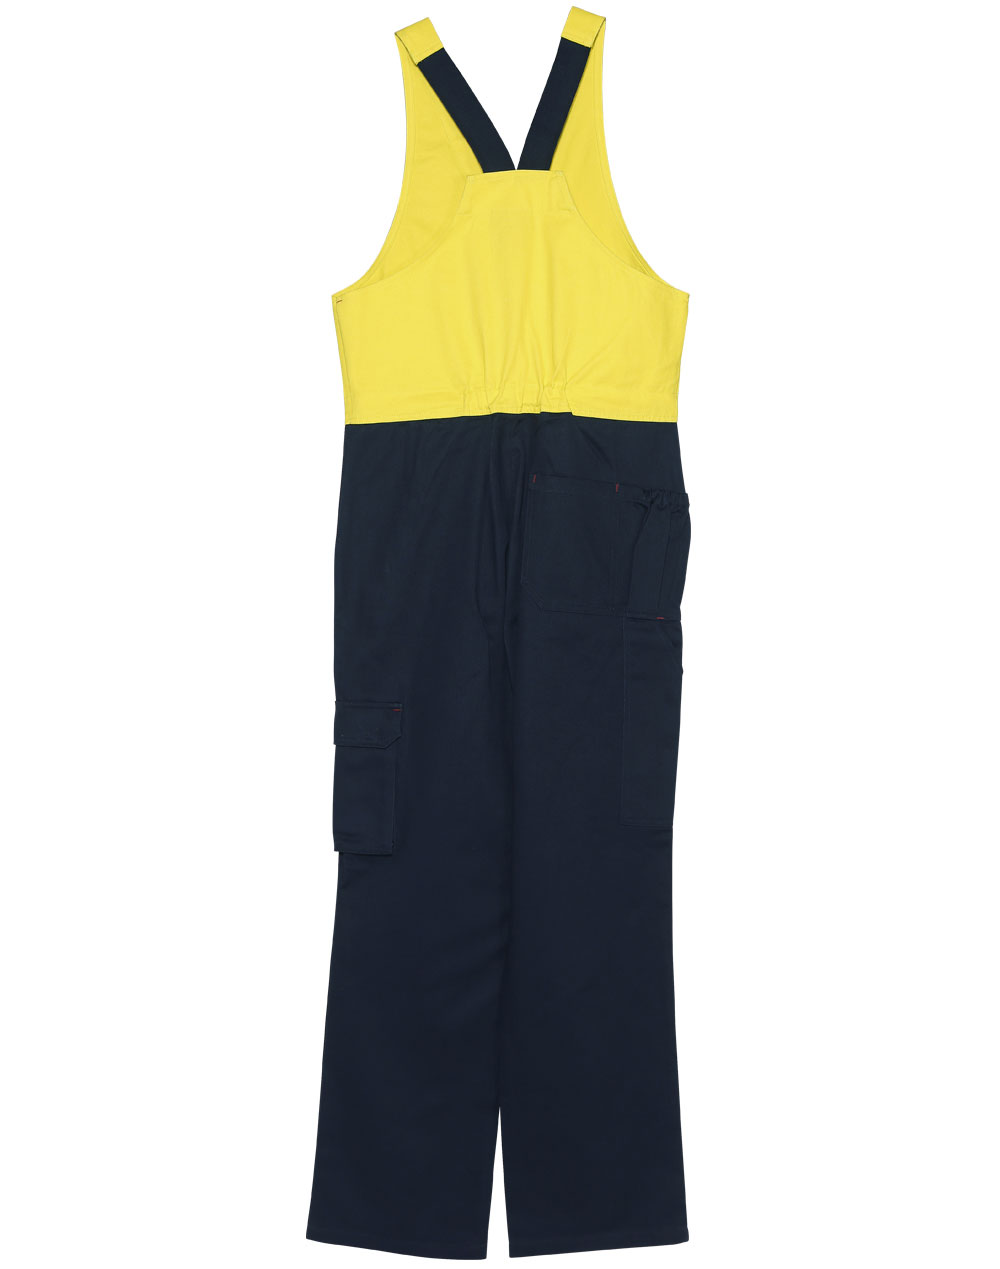 https://s3-ap-southeast-1.amazonaws.com/ws-imgs/WORKWEAR/SW202_Yellow.Navy_Back.jpg